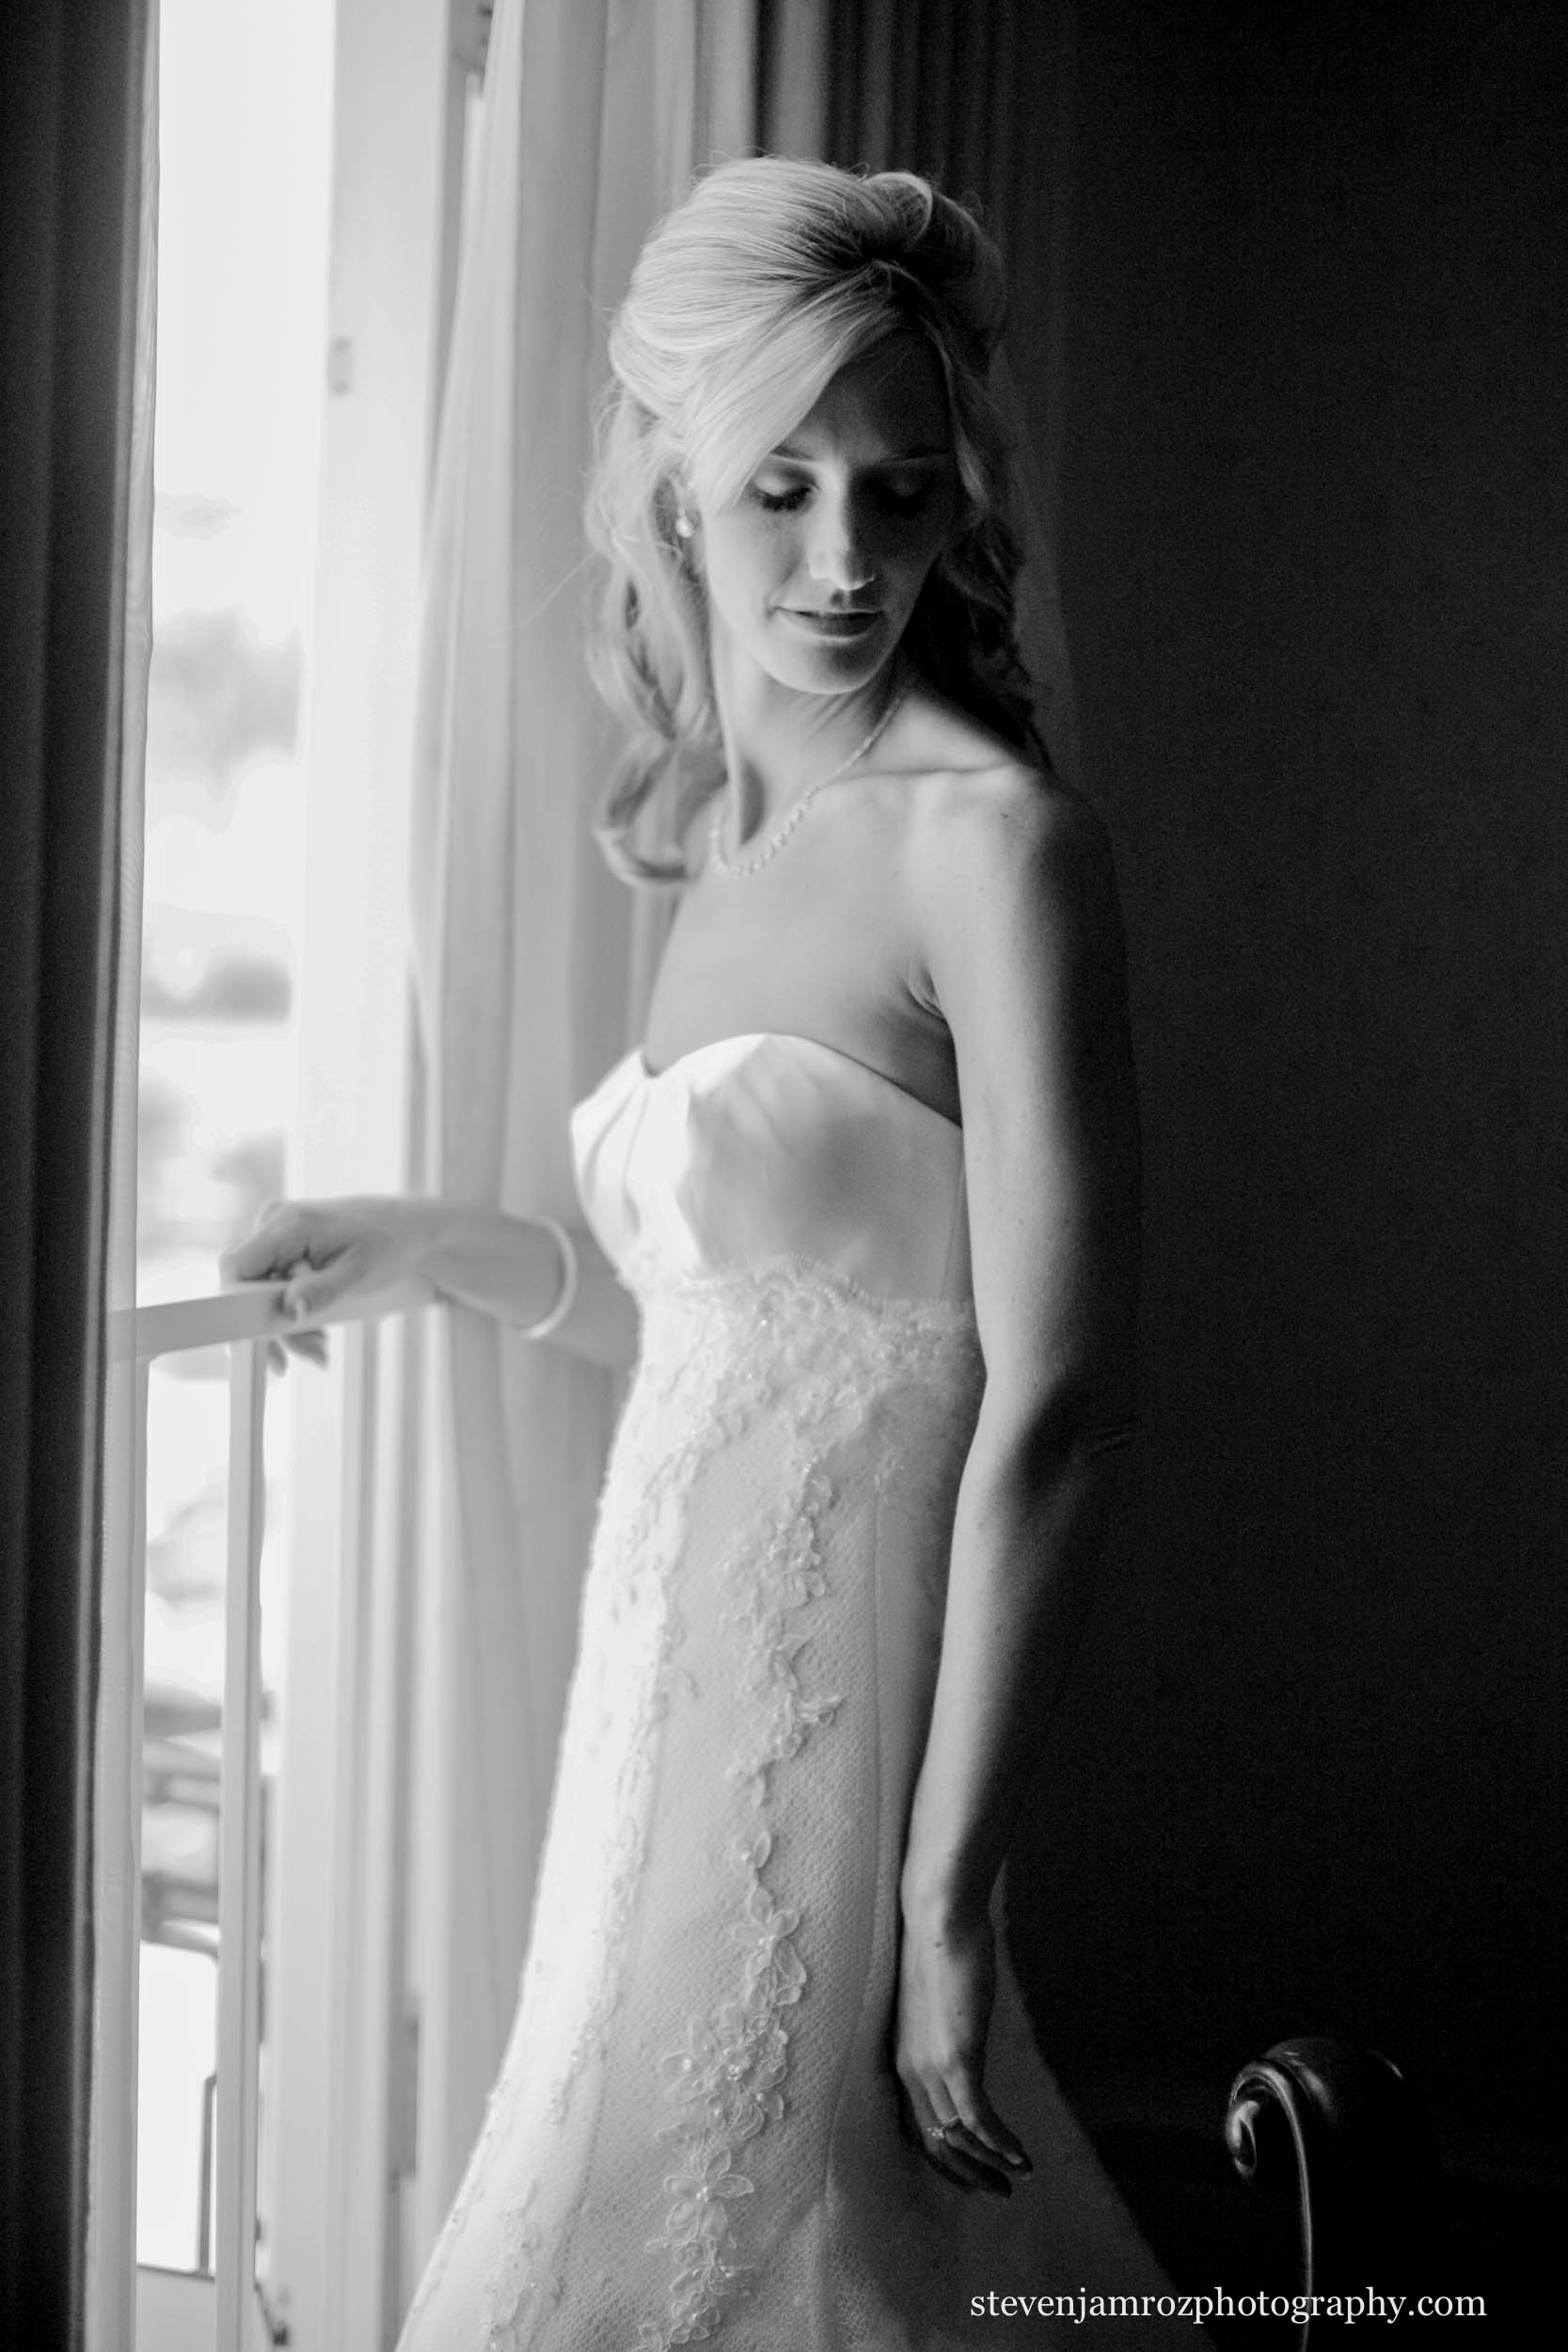 window-light-portrait-raleigh-wedding-nc-steven-jamroz-photography-0435.jpg